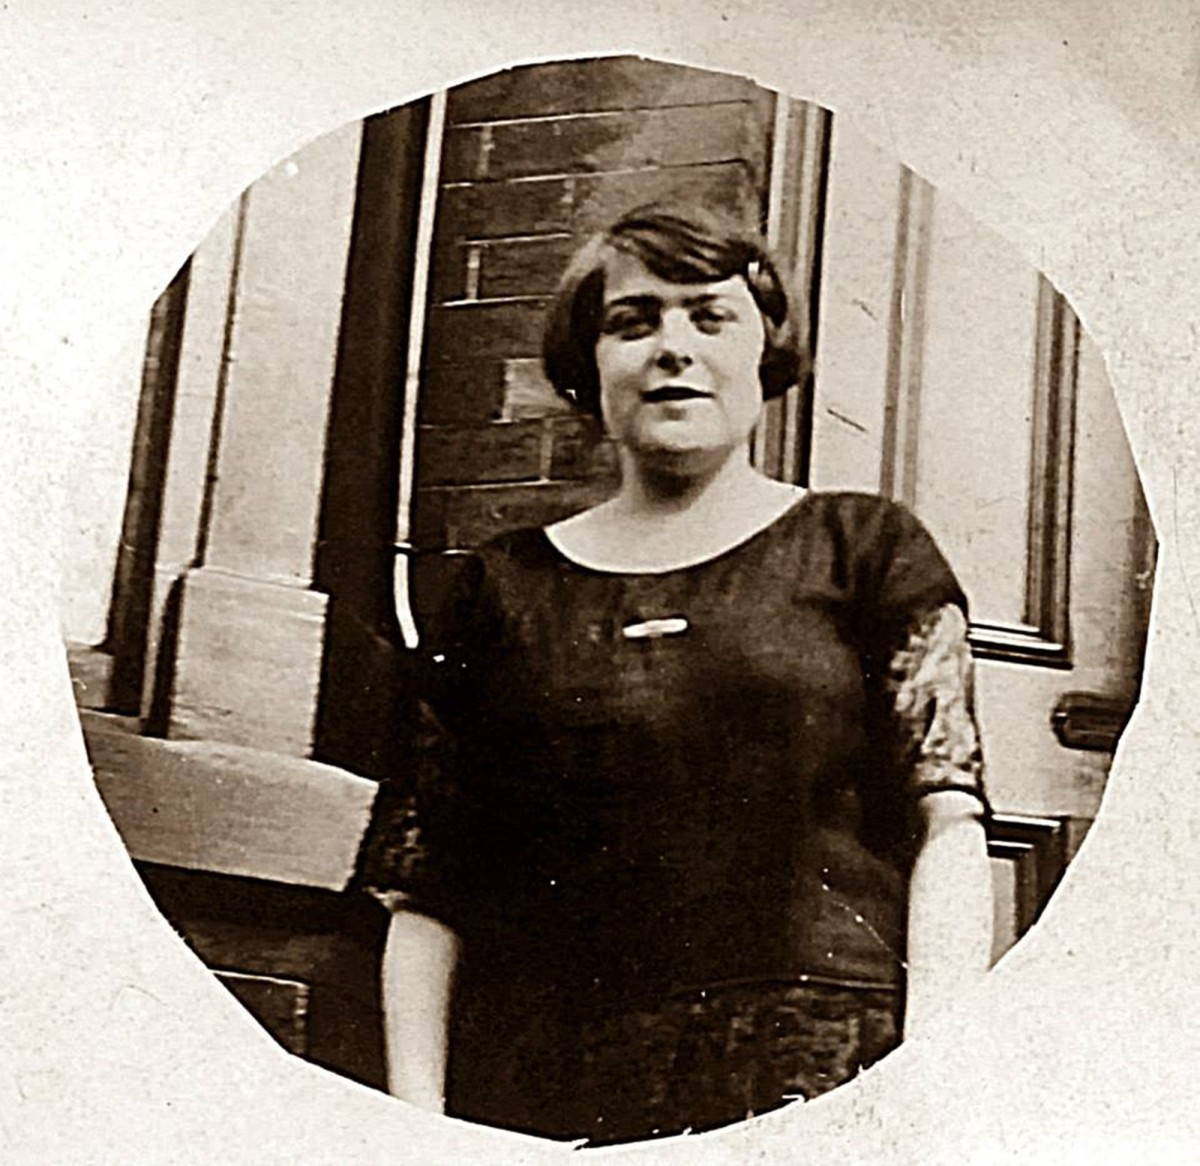 My grandma, Ivy Trigg (nee Garnham) as a young woman in the 1920s.